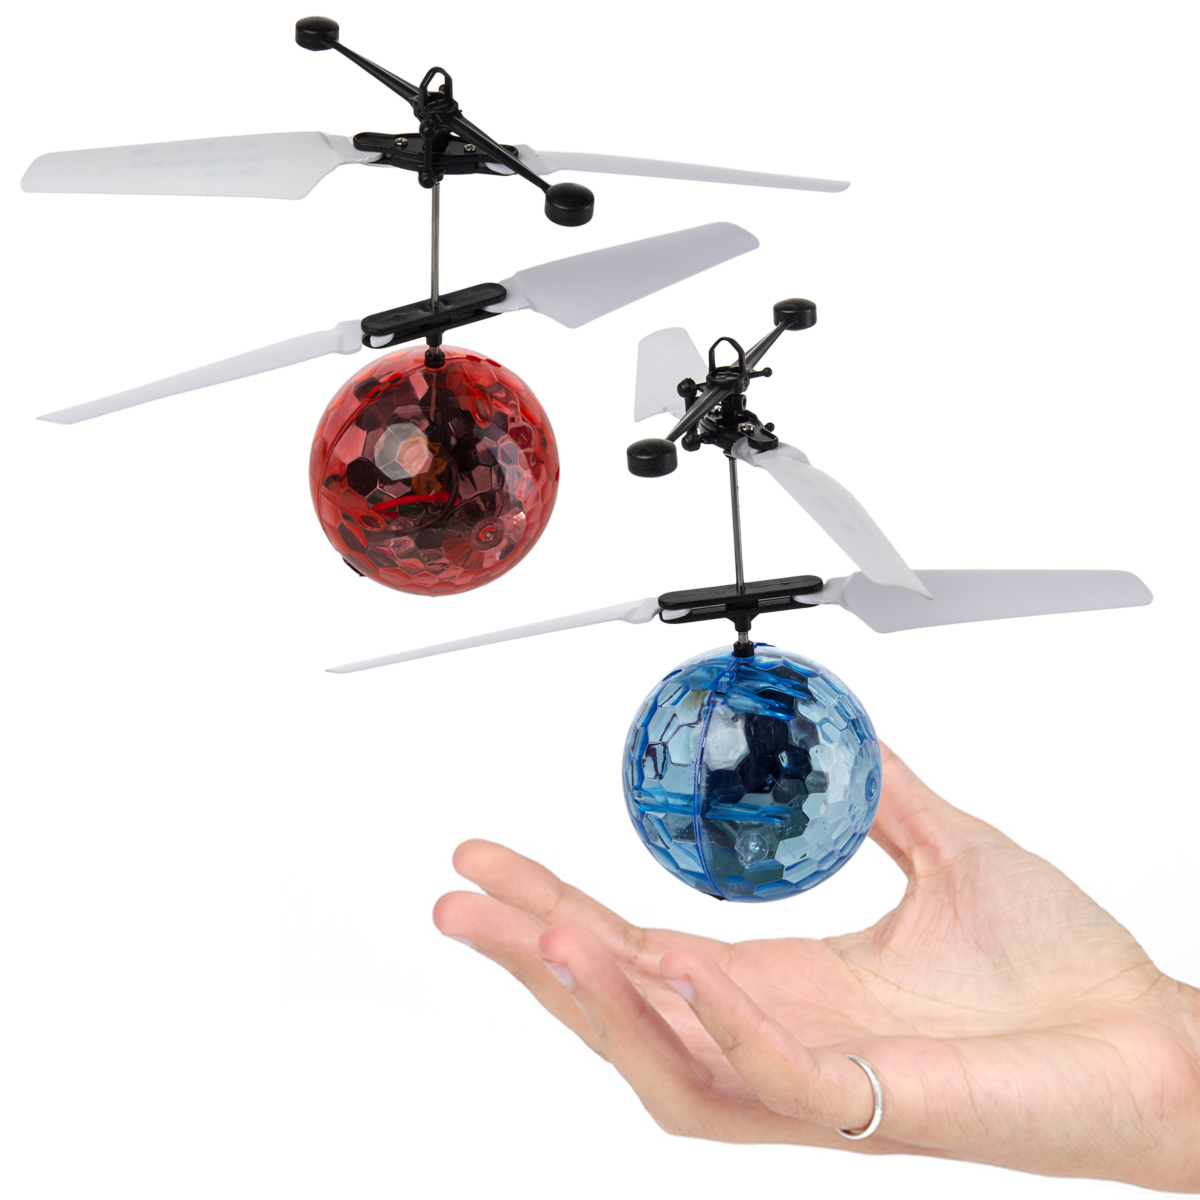 2pk Flying Ball Helicopter Toy LED Light Up RC Style Induction Drone Kids Adults by